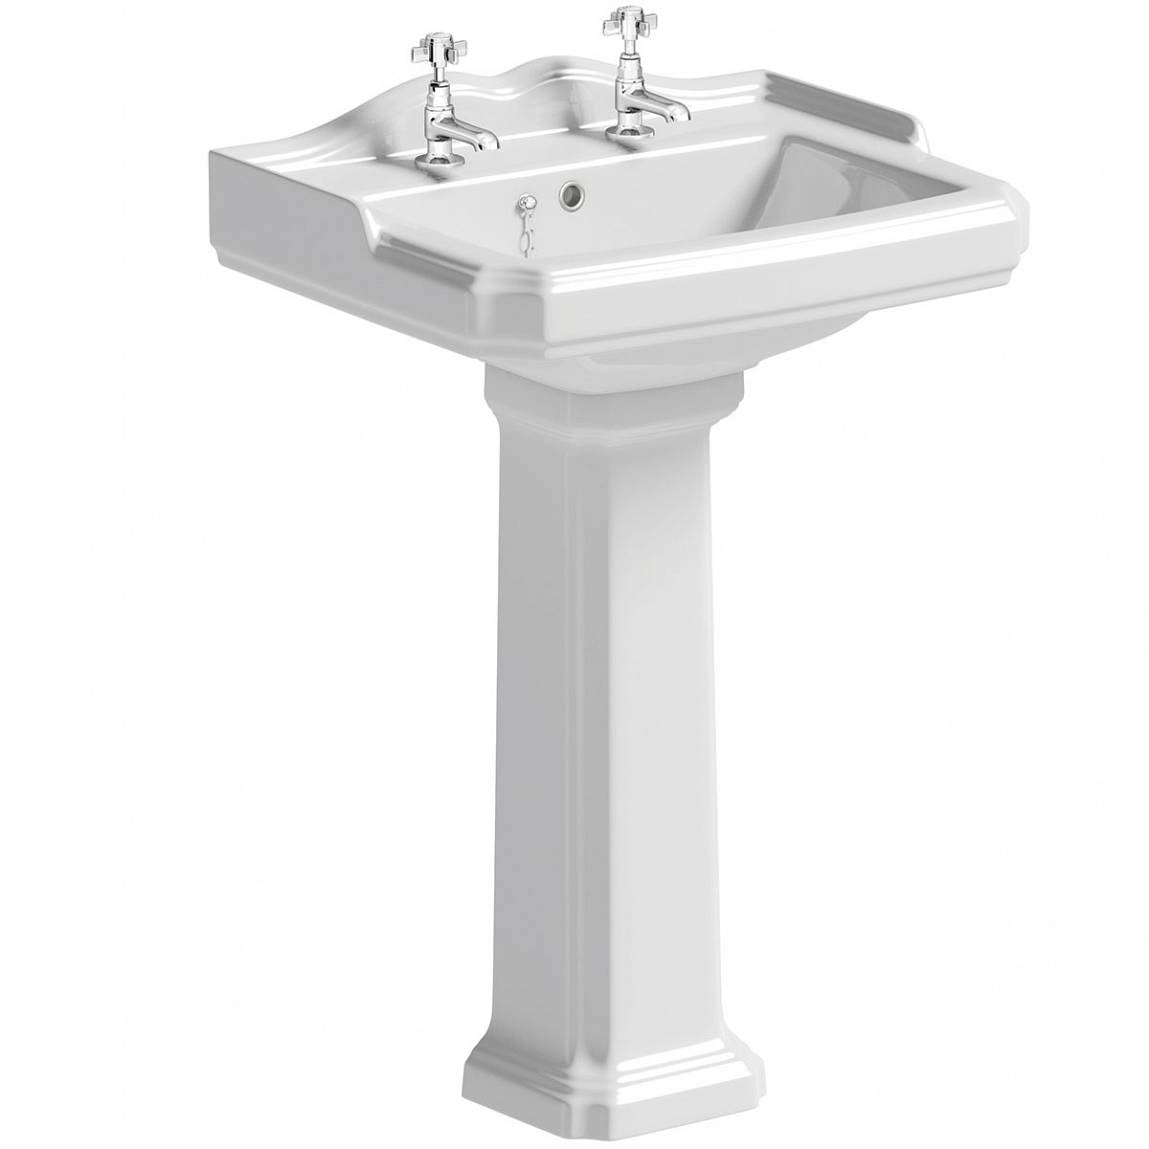 Winchester 2 tap hole full pedestal basin 600mm